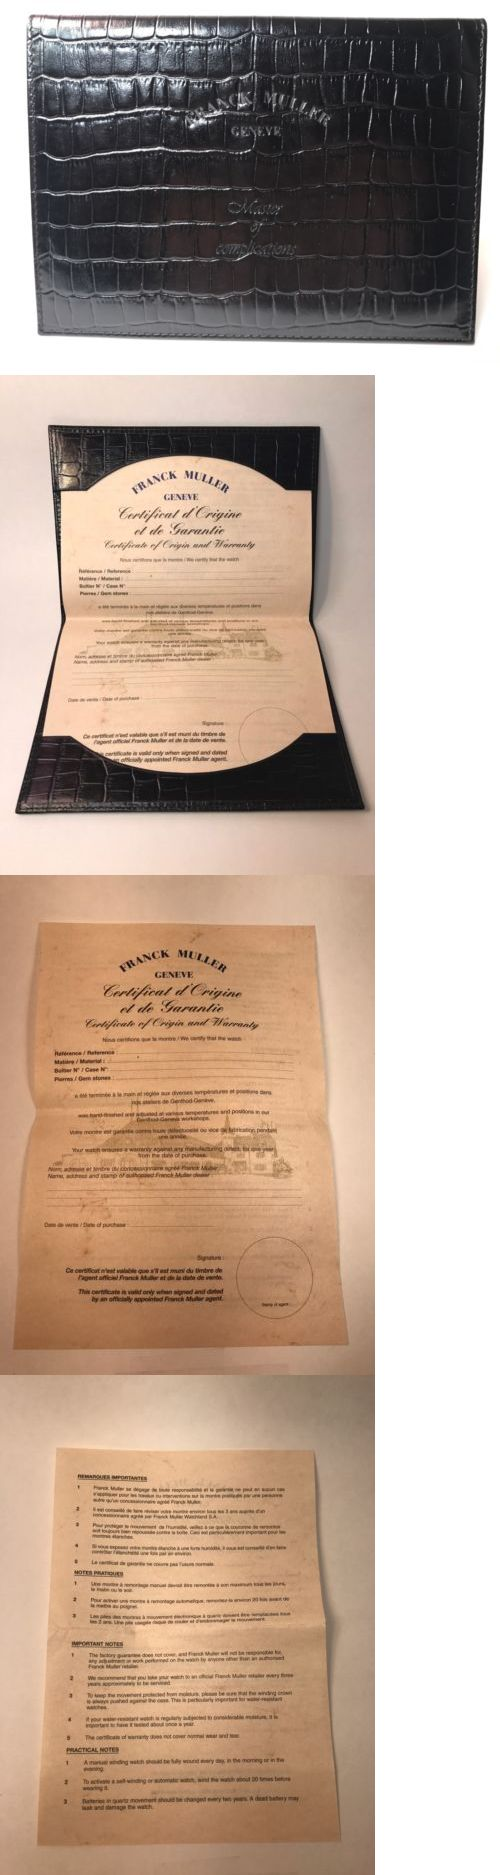 Manuals and Guides 93720: Franck Muller Crazy Hours Certificate Of Origin And Warranty -> BUY IT NOW ONLY: $350.99 on eBay!